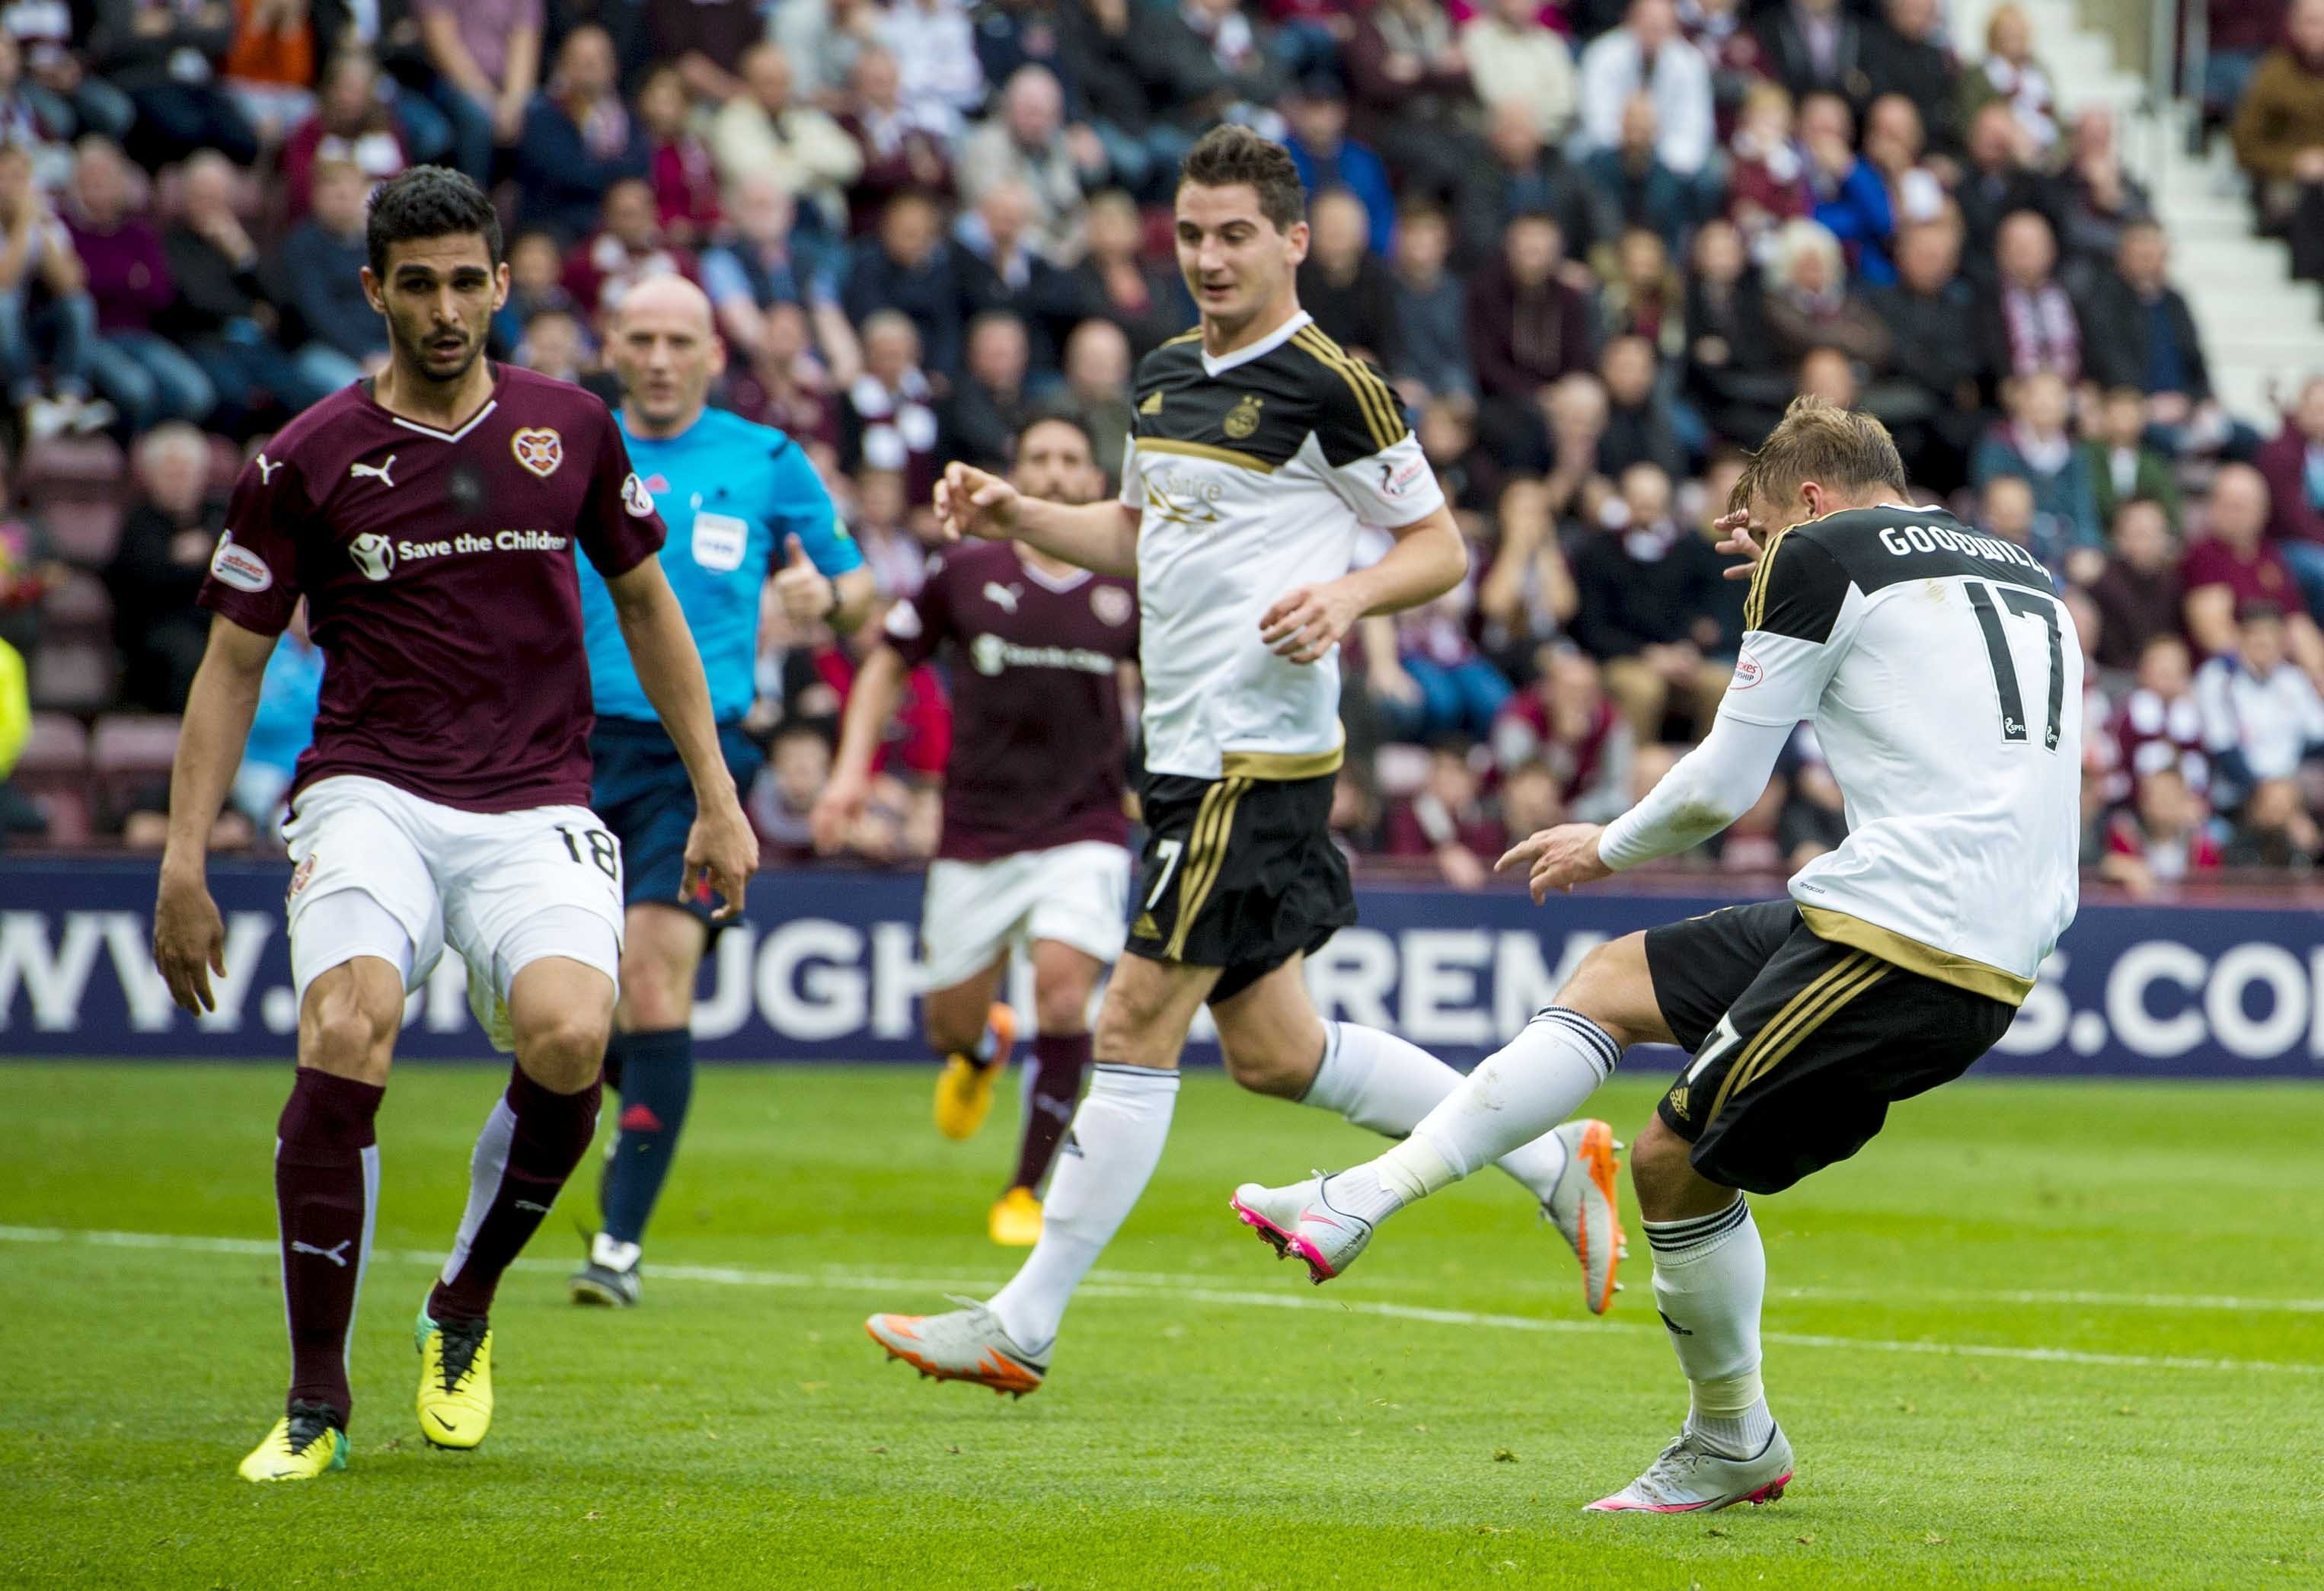 Goodwillie strikes from inside the box to put his side 3-0 to the good at half time